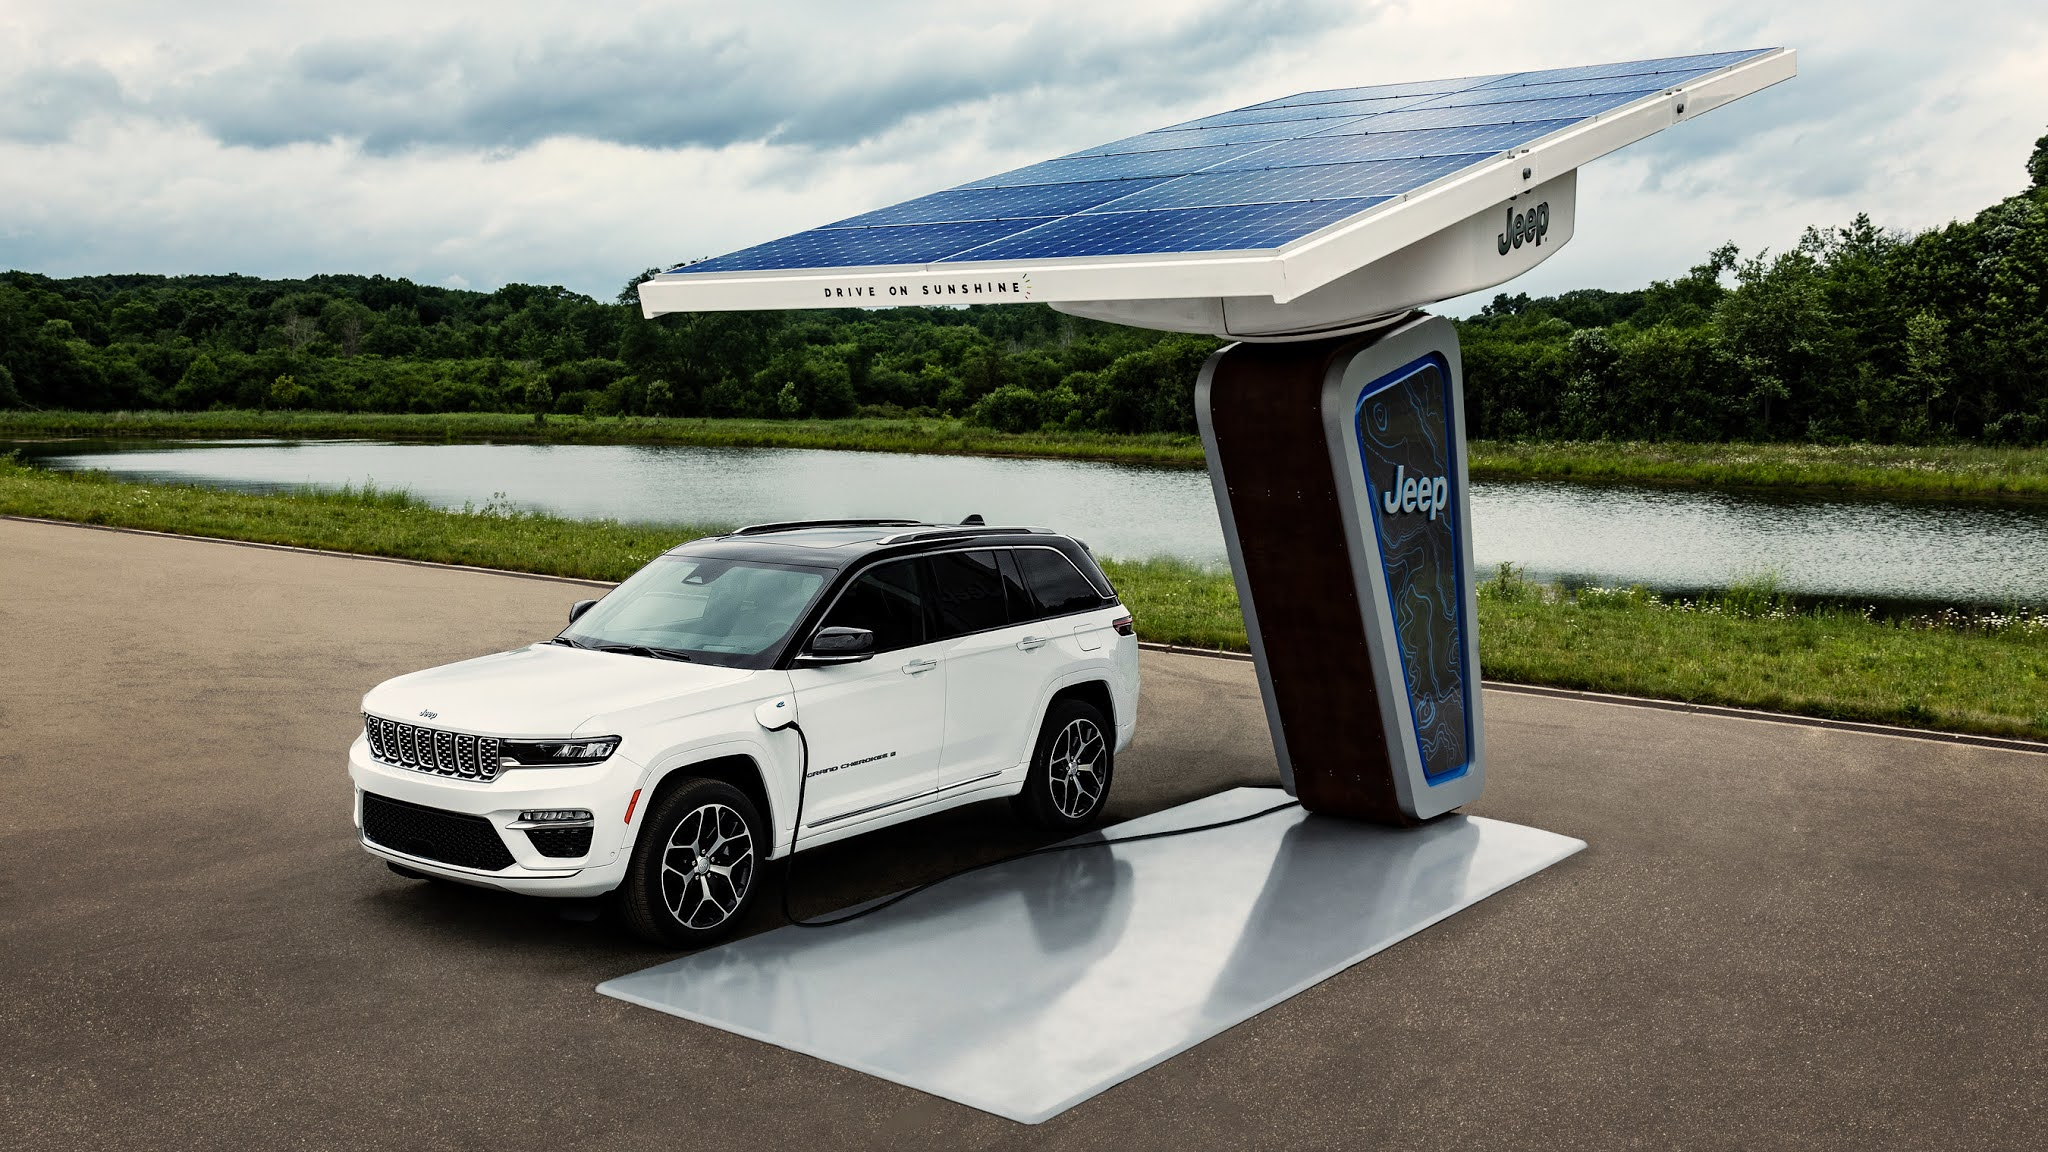 Jeep Brand Reveals First Images of All-new Electrified 2022 Jeep Grand Cherokee 4xe